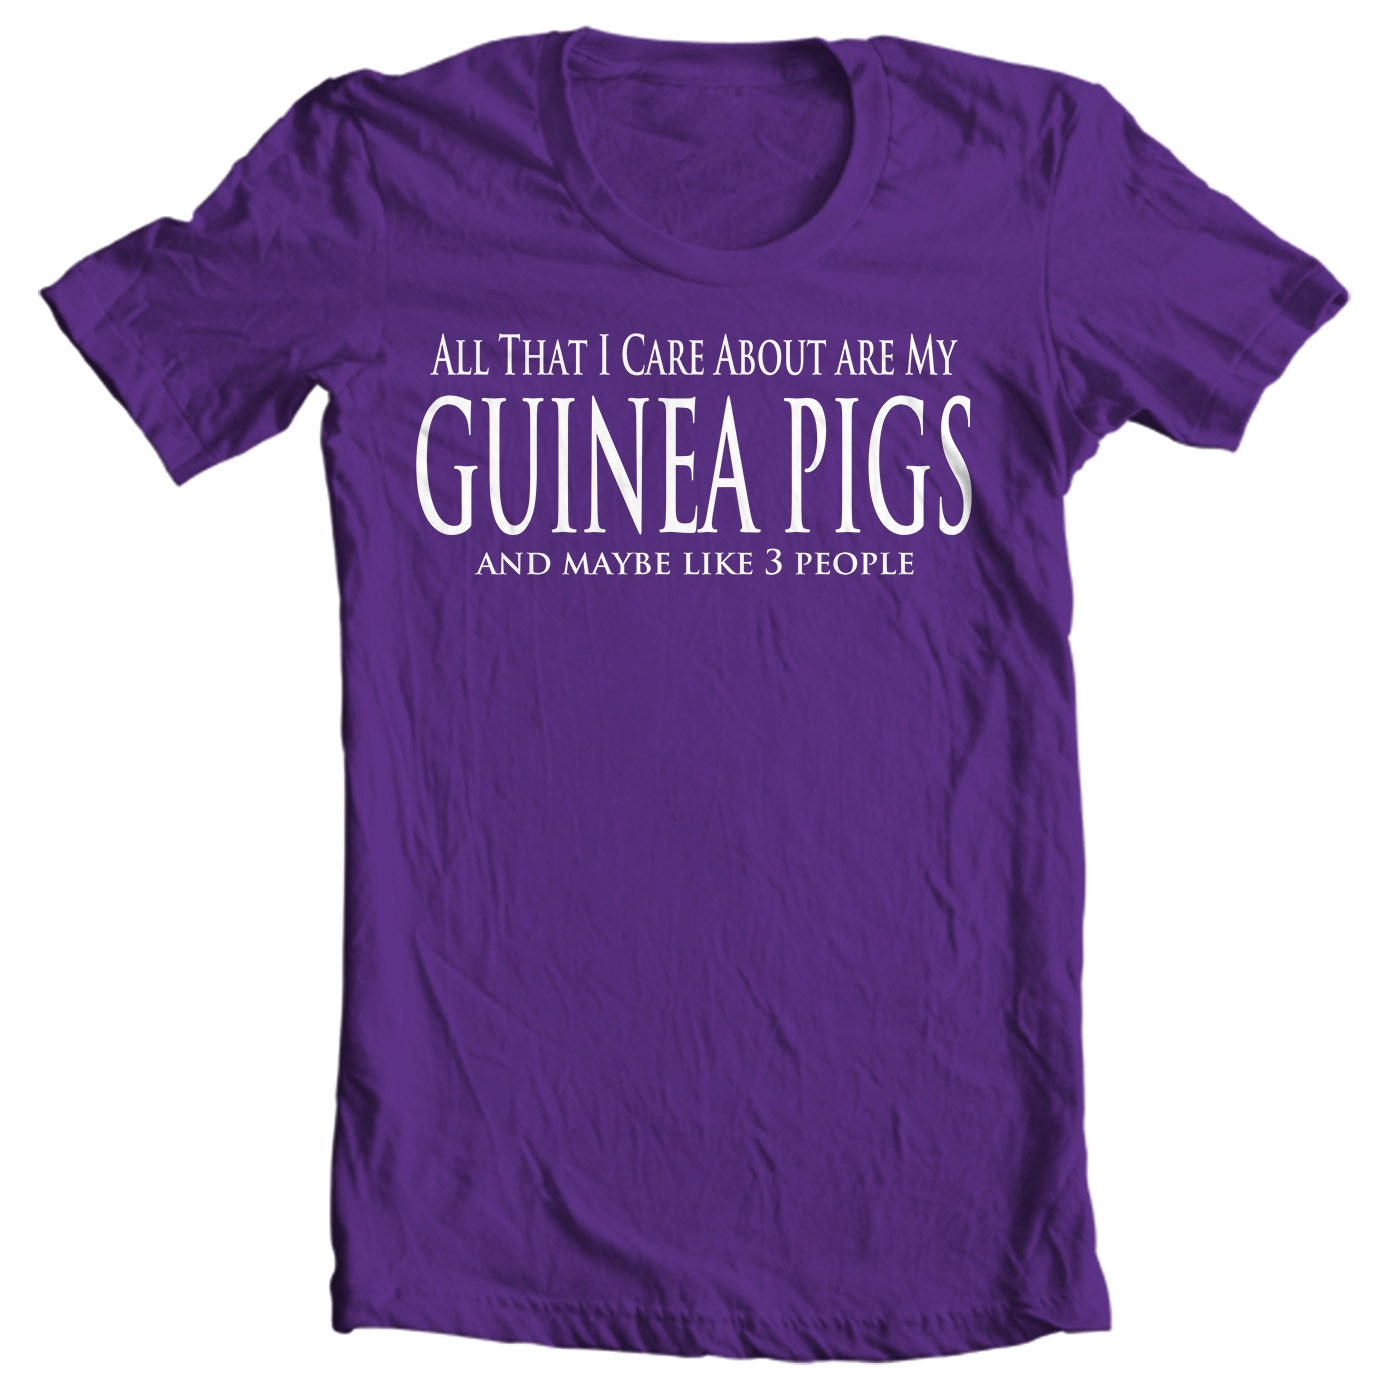 All That I Care About Are My Guinea Pigs Kids T-shirt